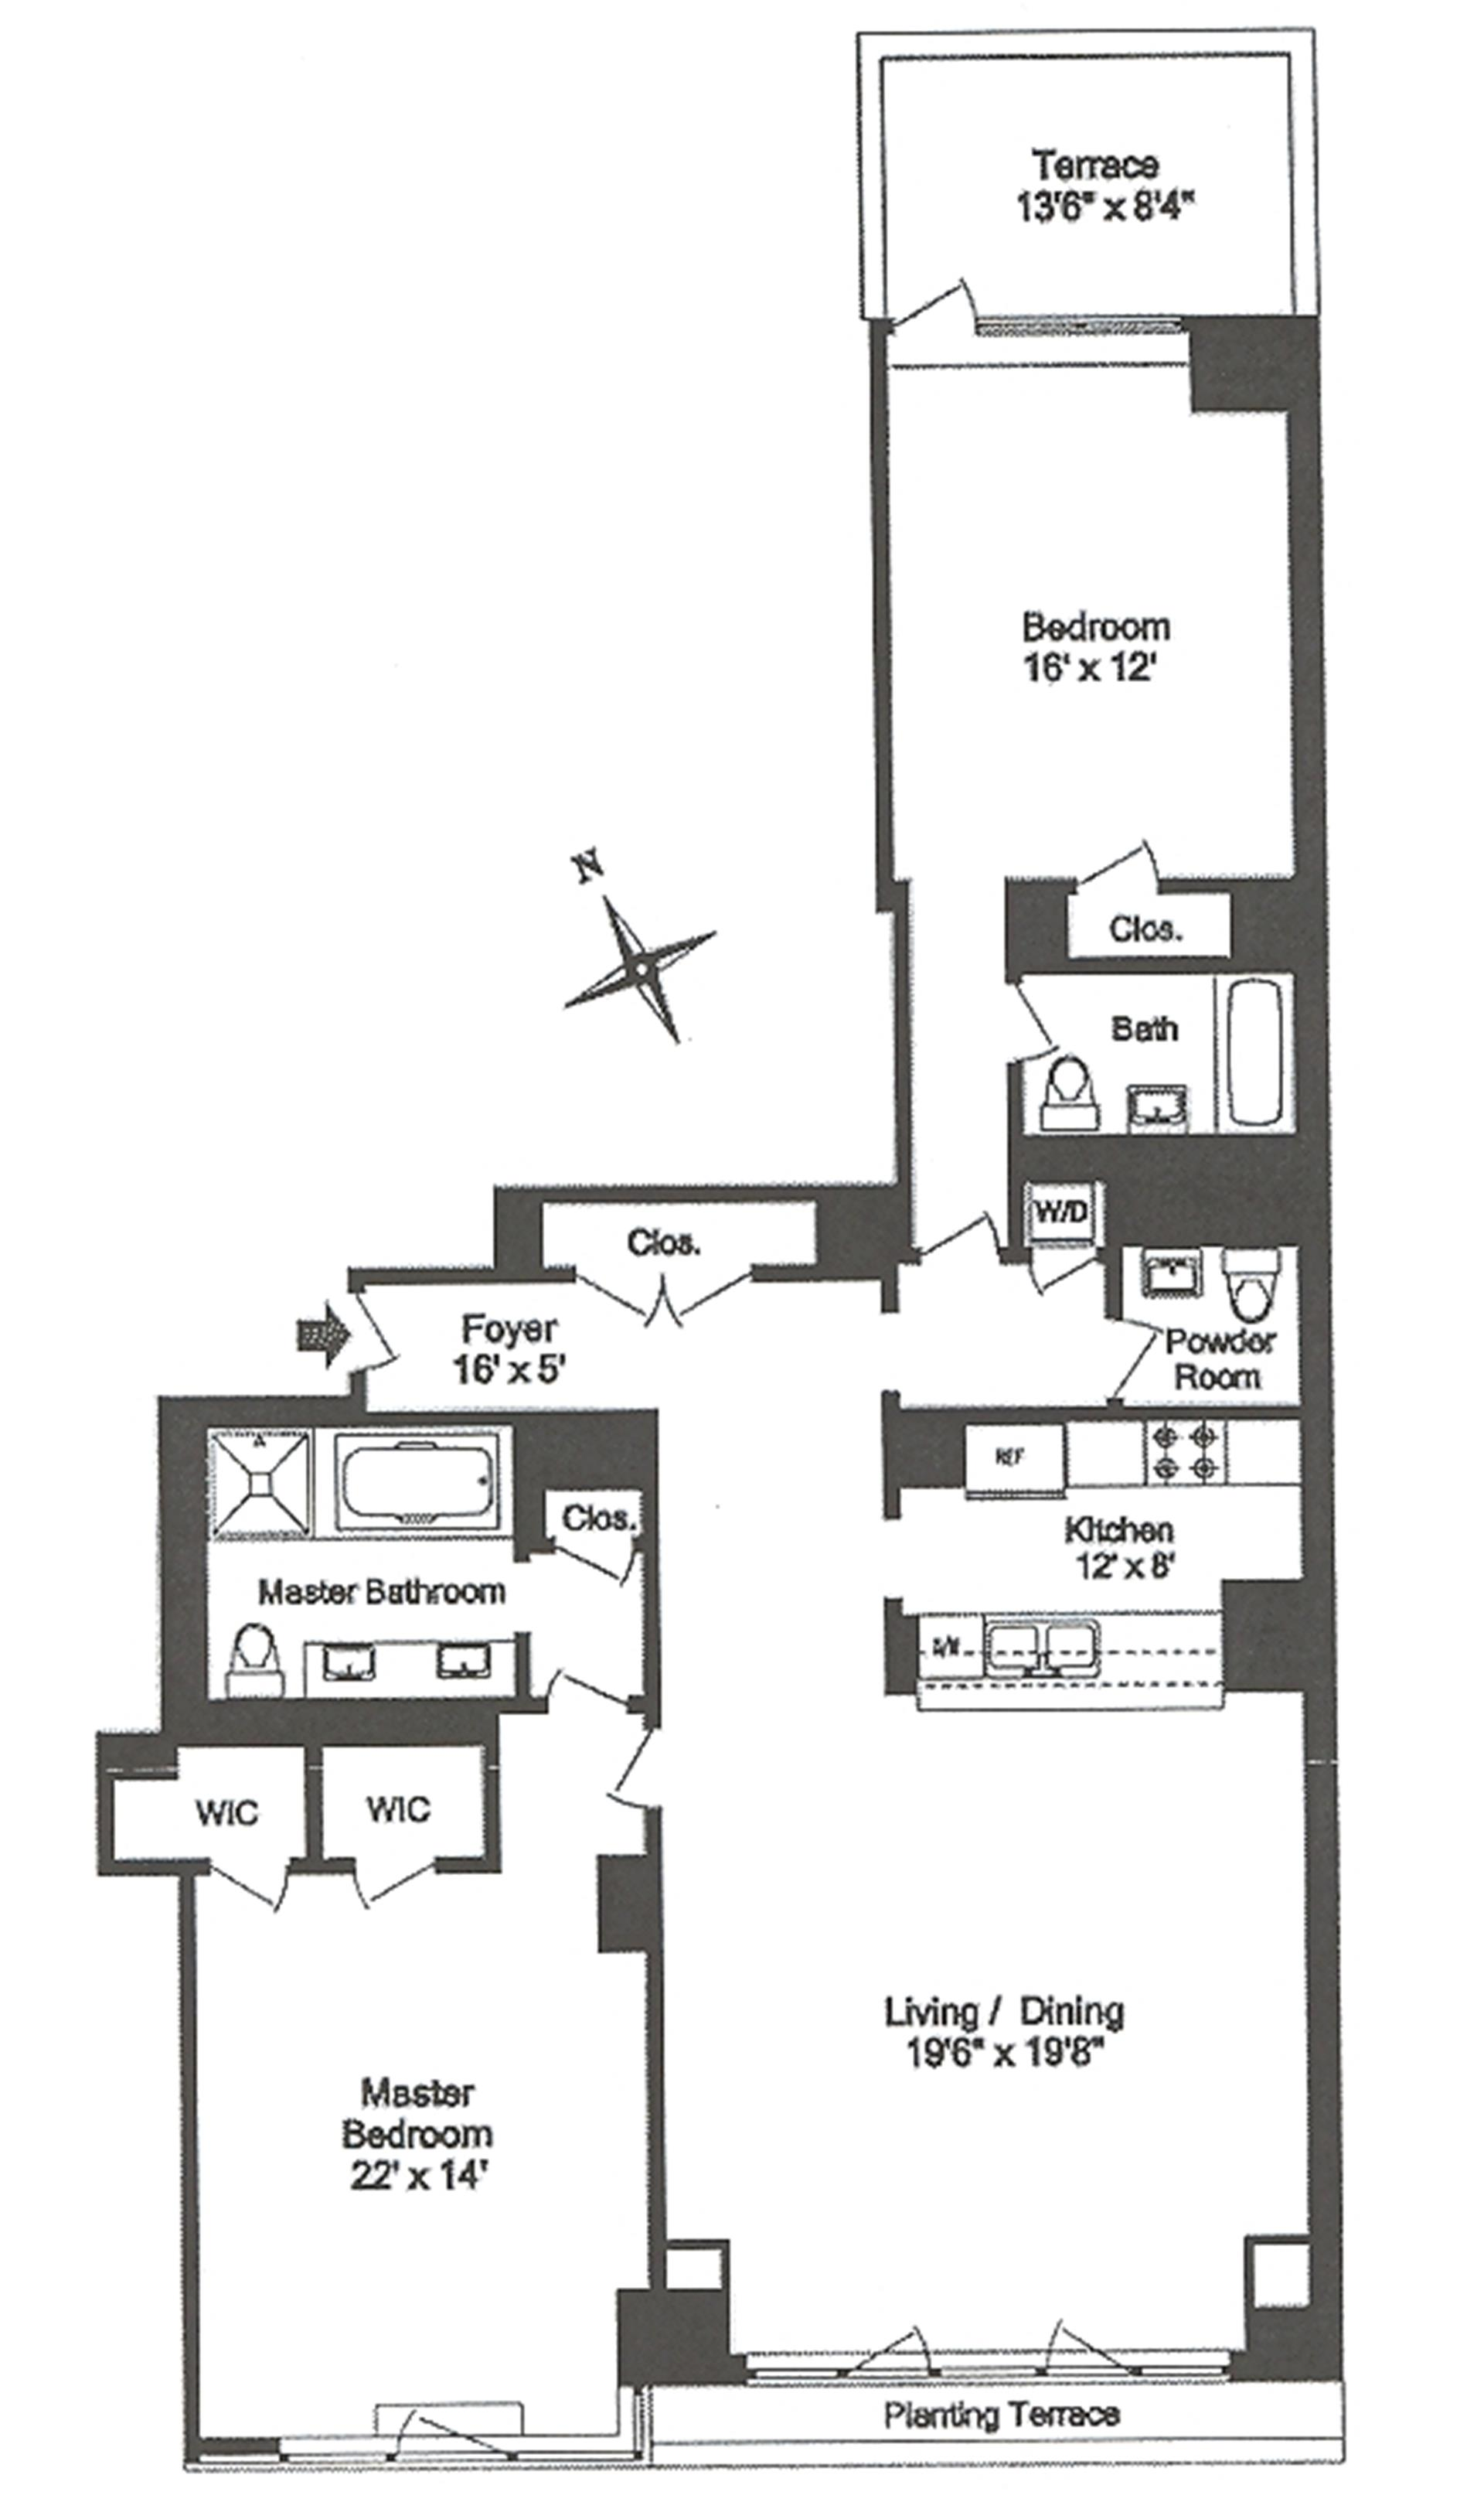 Floor plan of 1 Morton Square, 2BE - West Village - Meatpacking District, New York